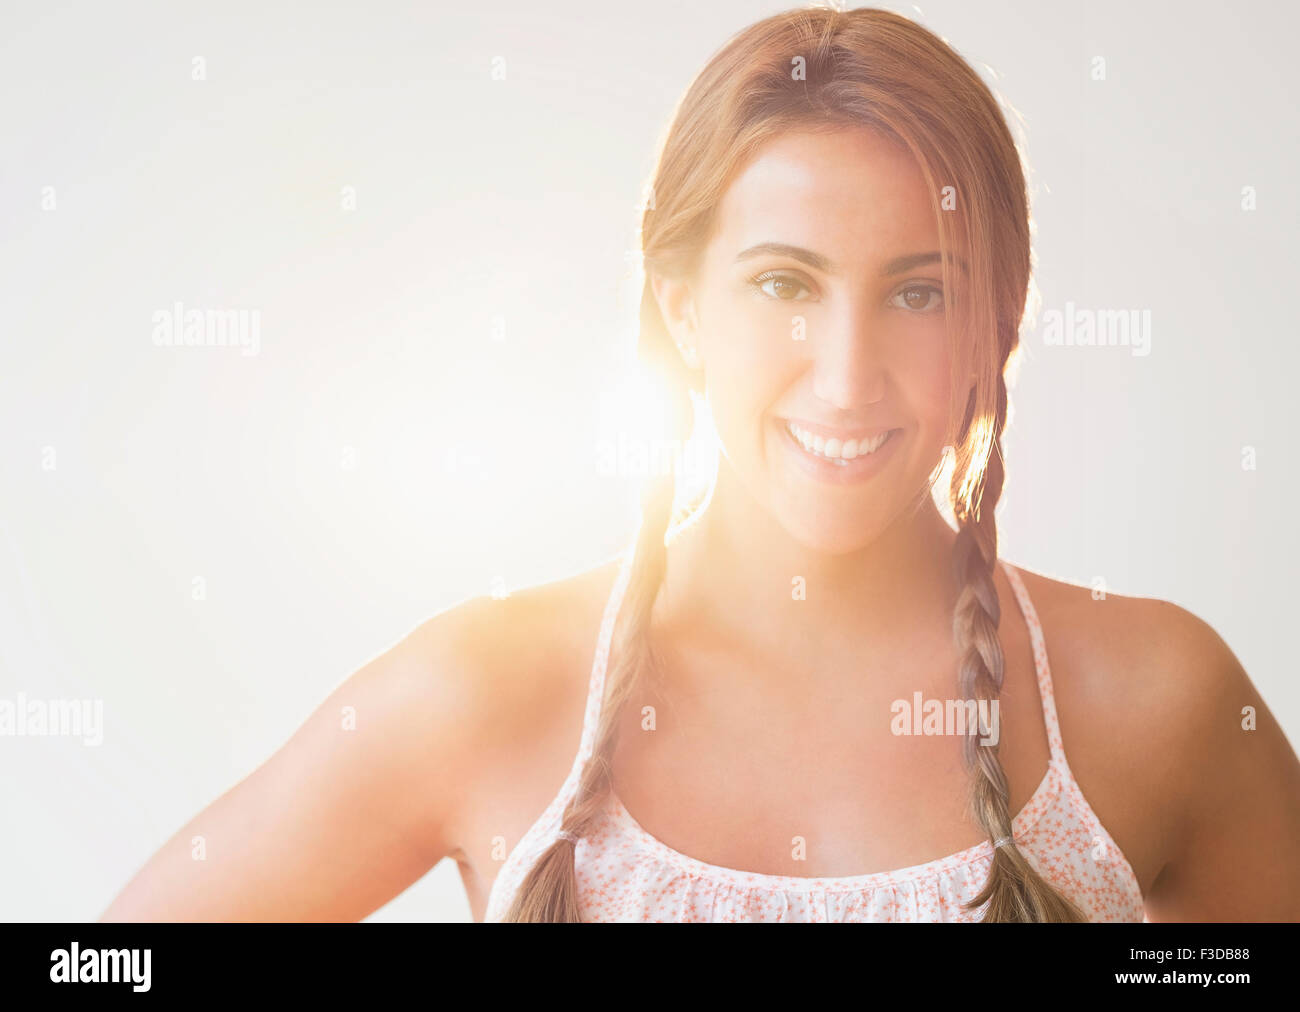 Portrait of young woman in studio - Stock Image